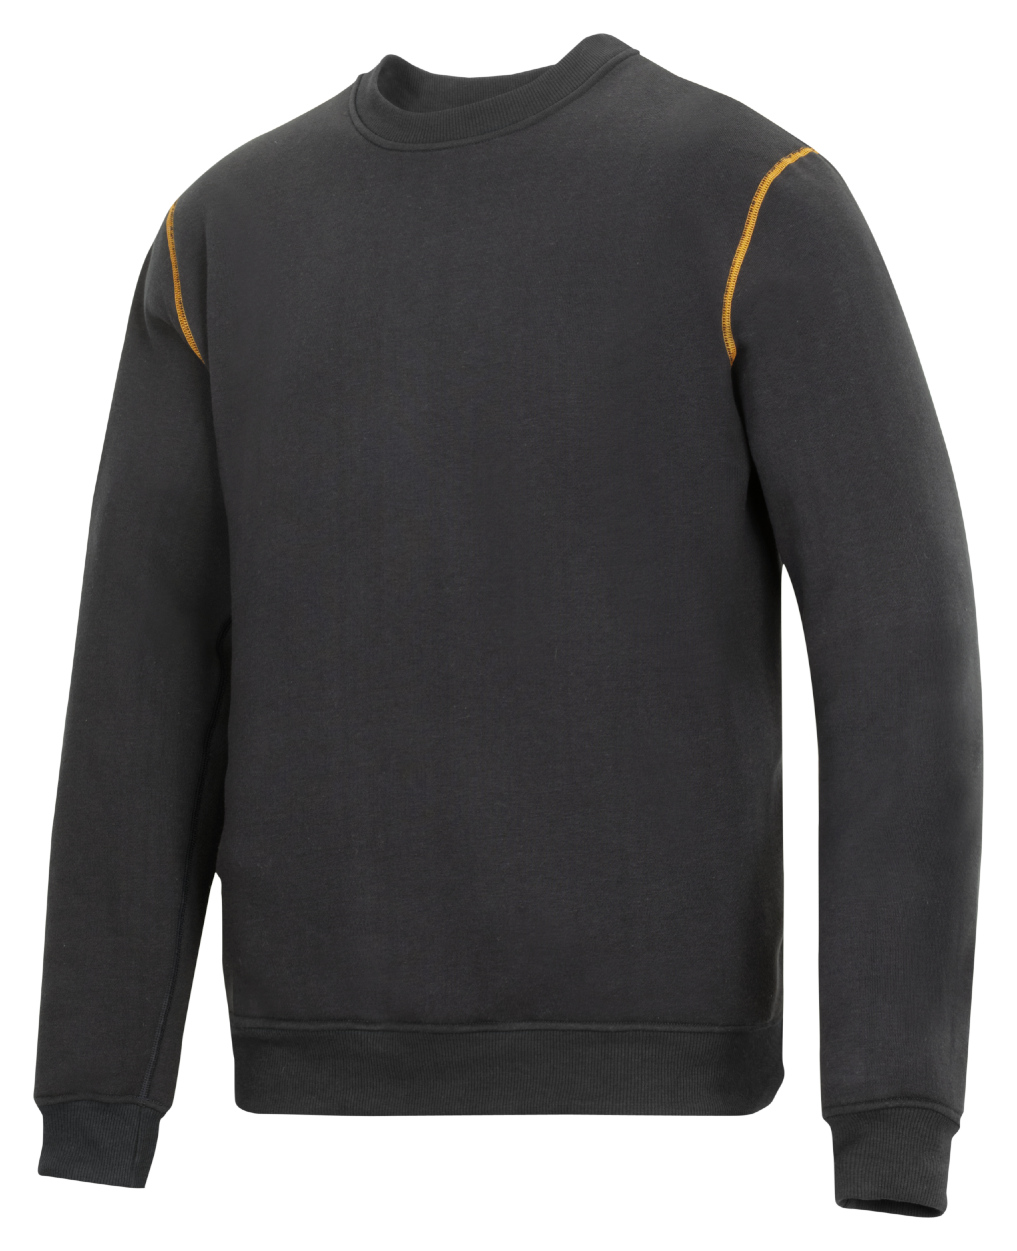 Snickers Flame Retardant Sweatshirt